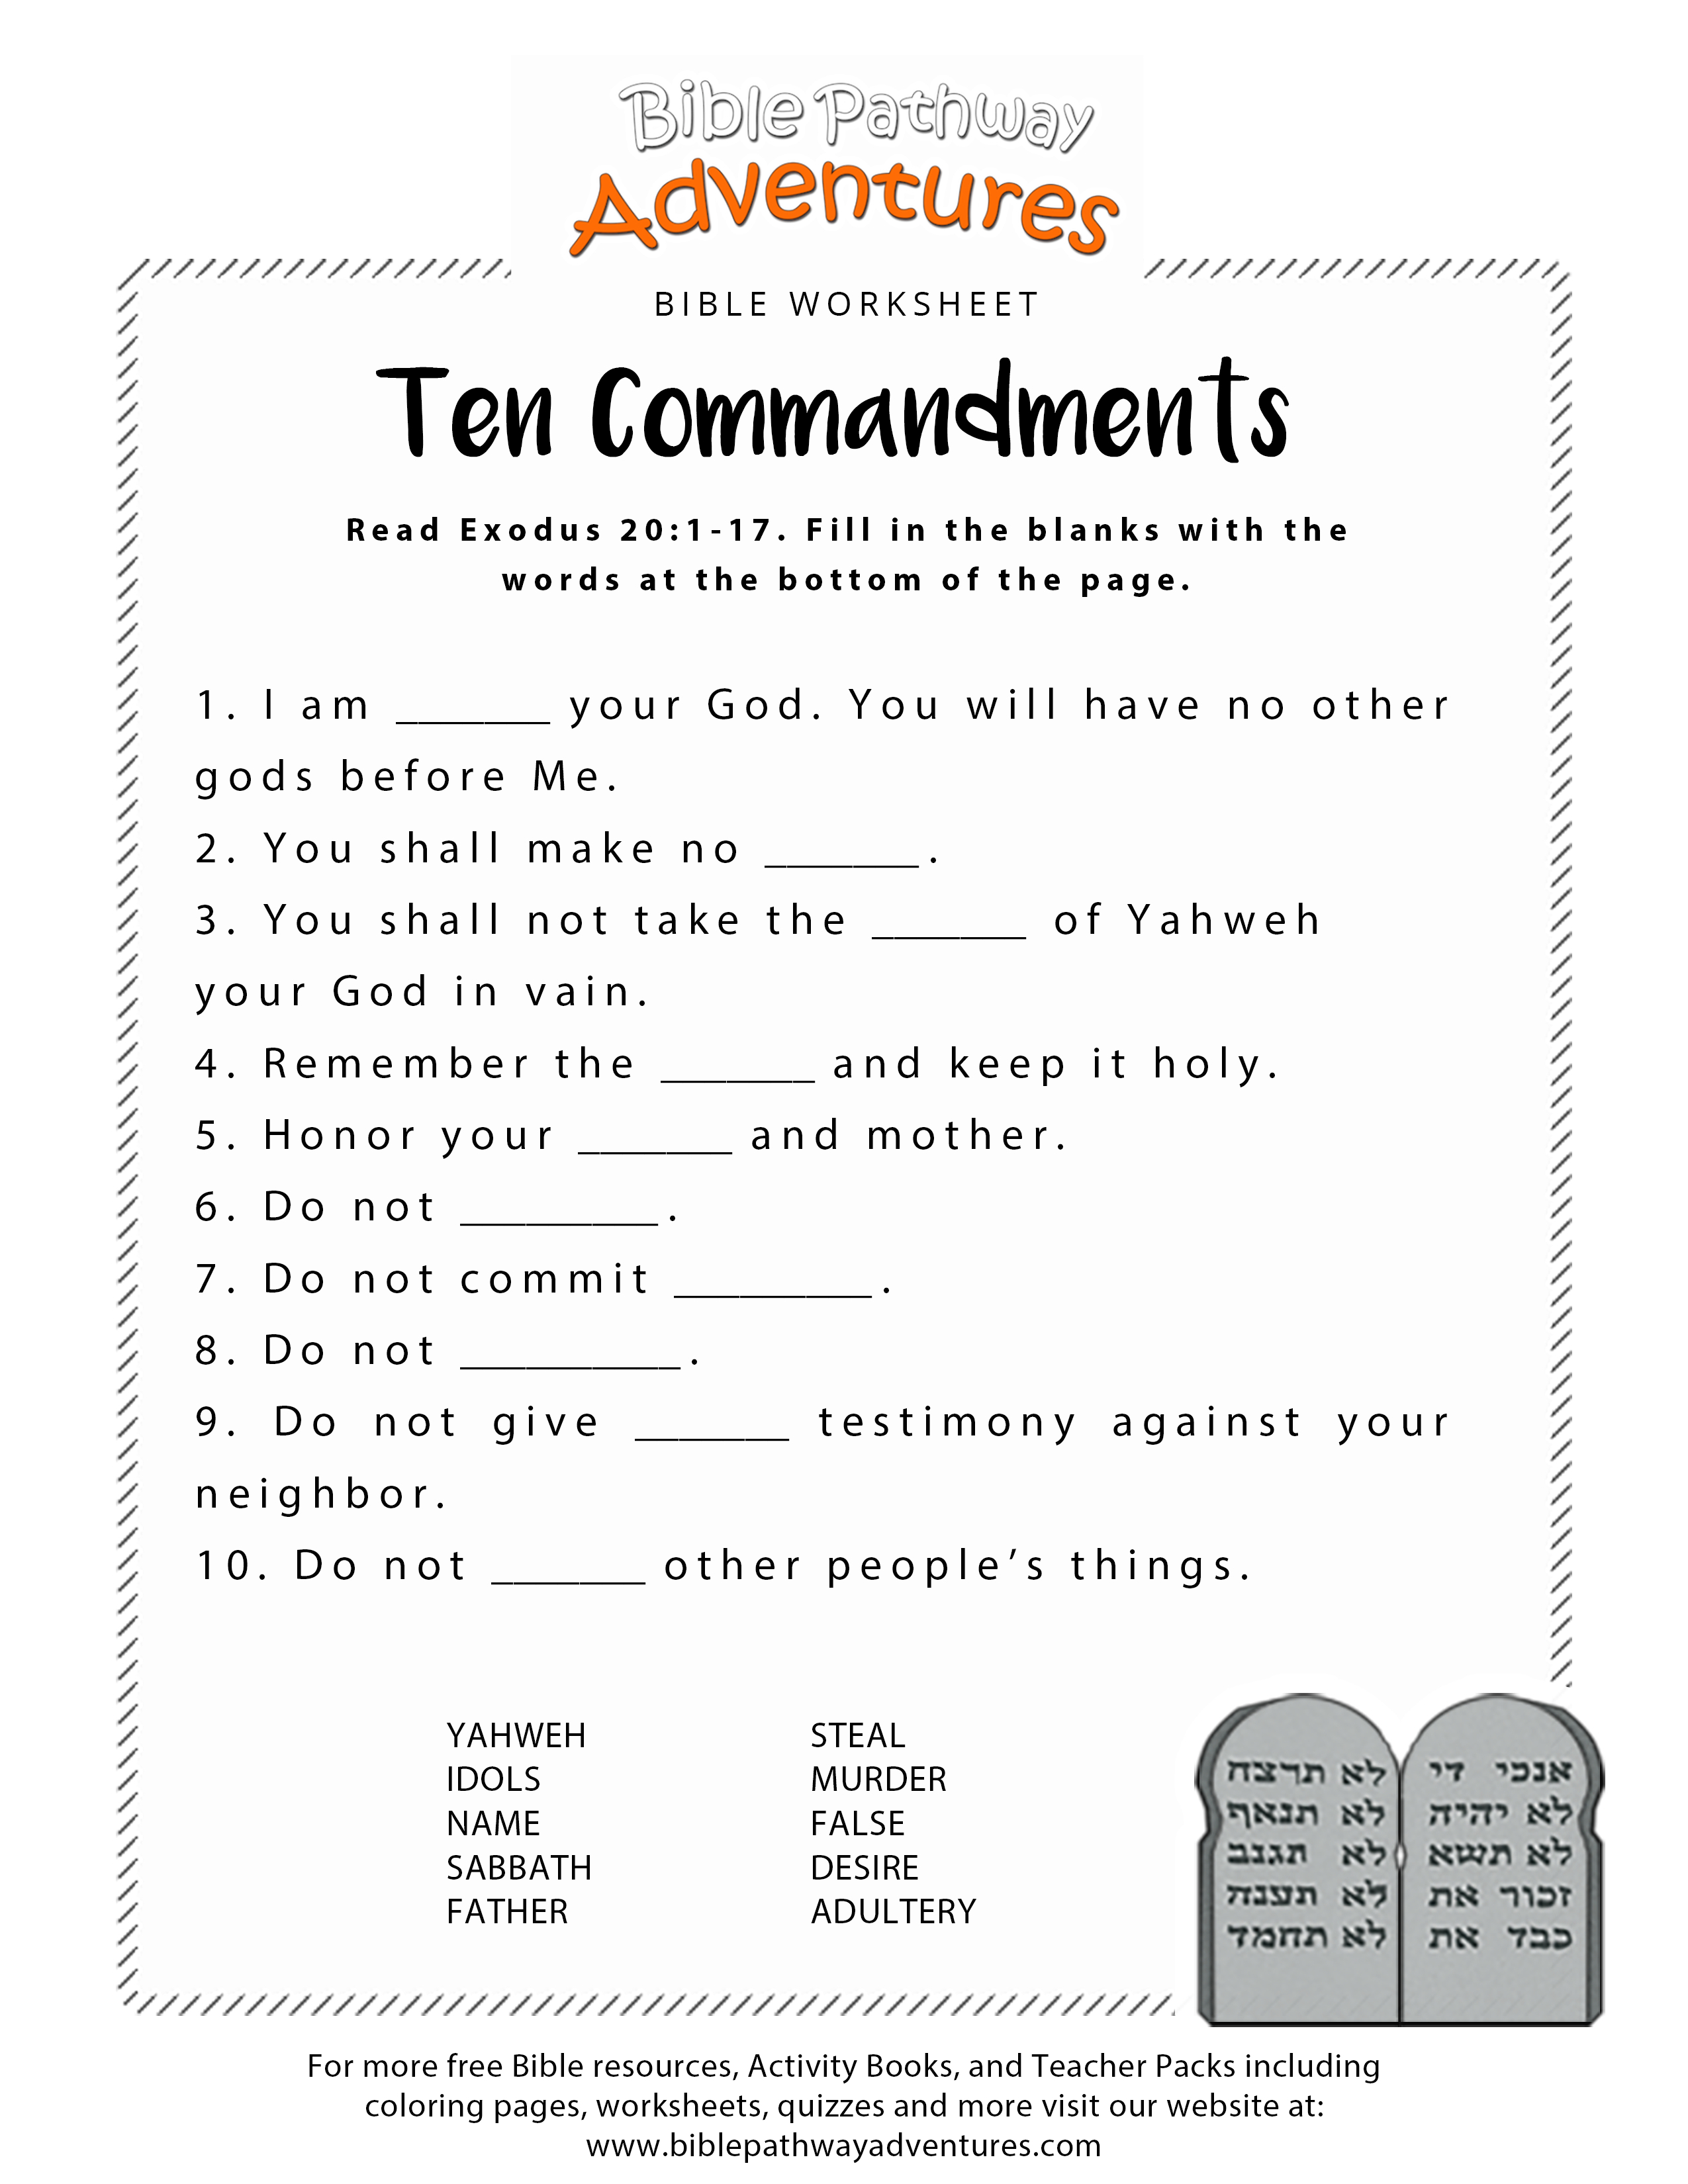 Free Printable Bible Worksheets For Youth – Worksheet Template | Books Of The Bible Printable Worksheets